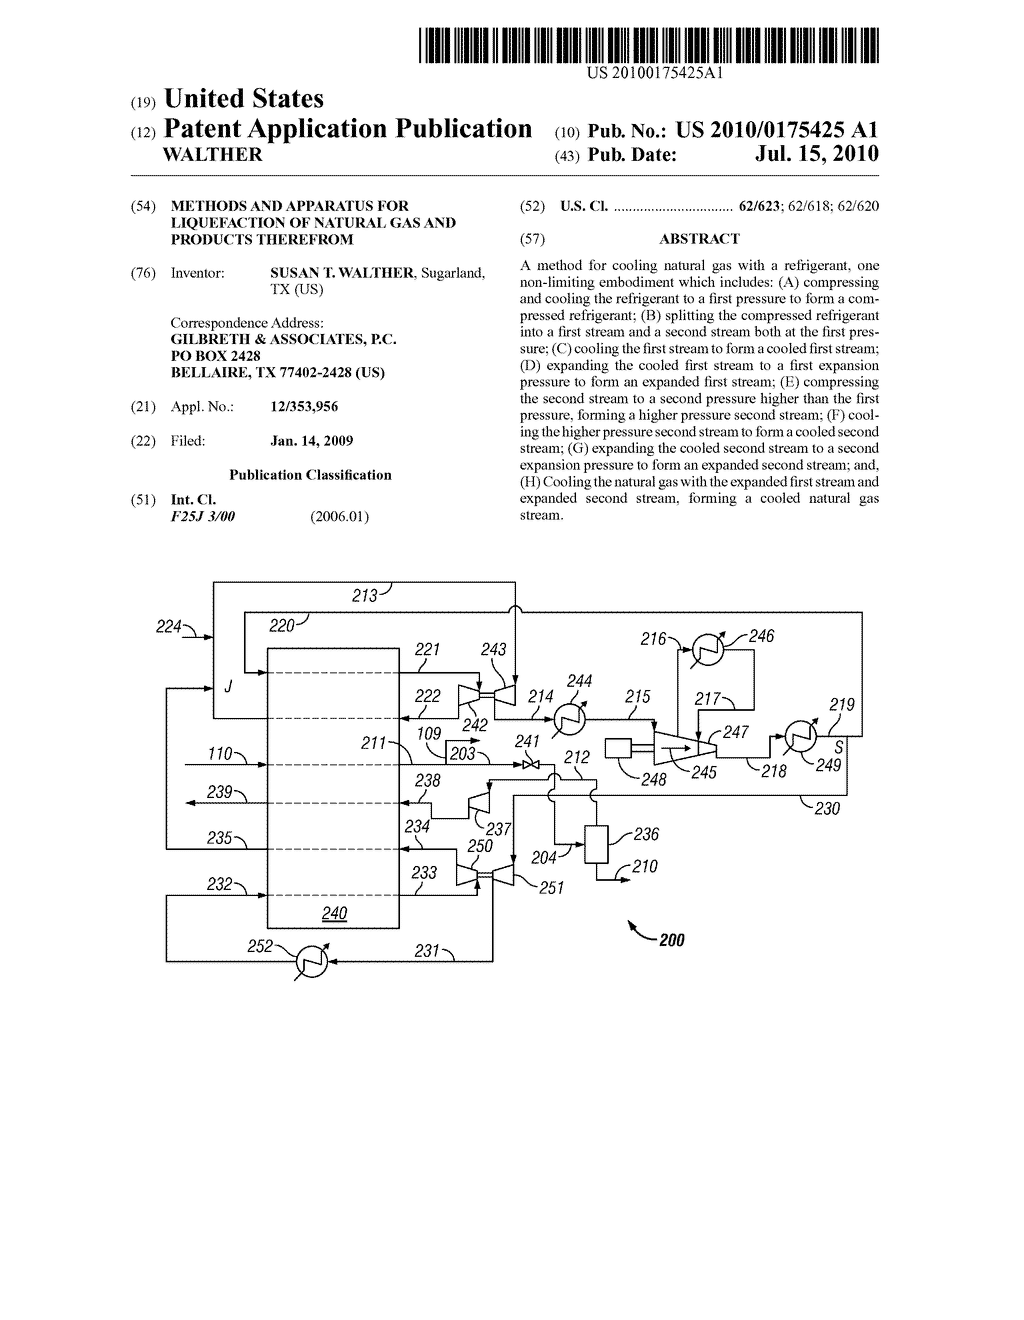 METHODS AND APPARATUS FOR LIQUEFACTION OF NATURAL GAS AND PRODUCTS THEREFROM - diagram, schematic, and image 01